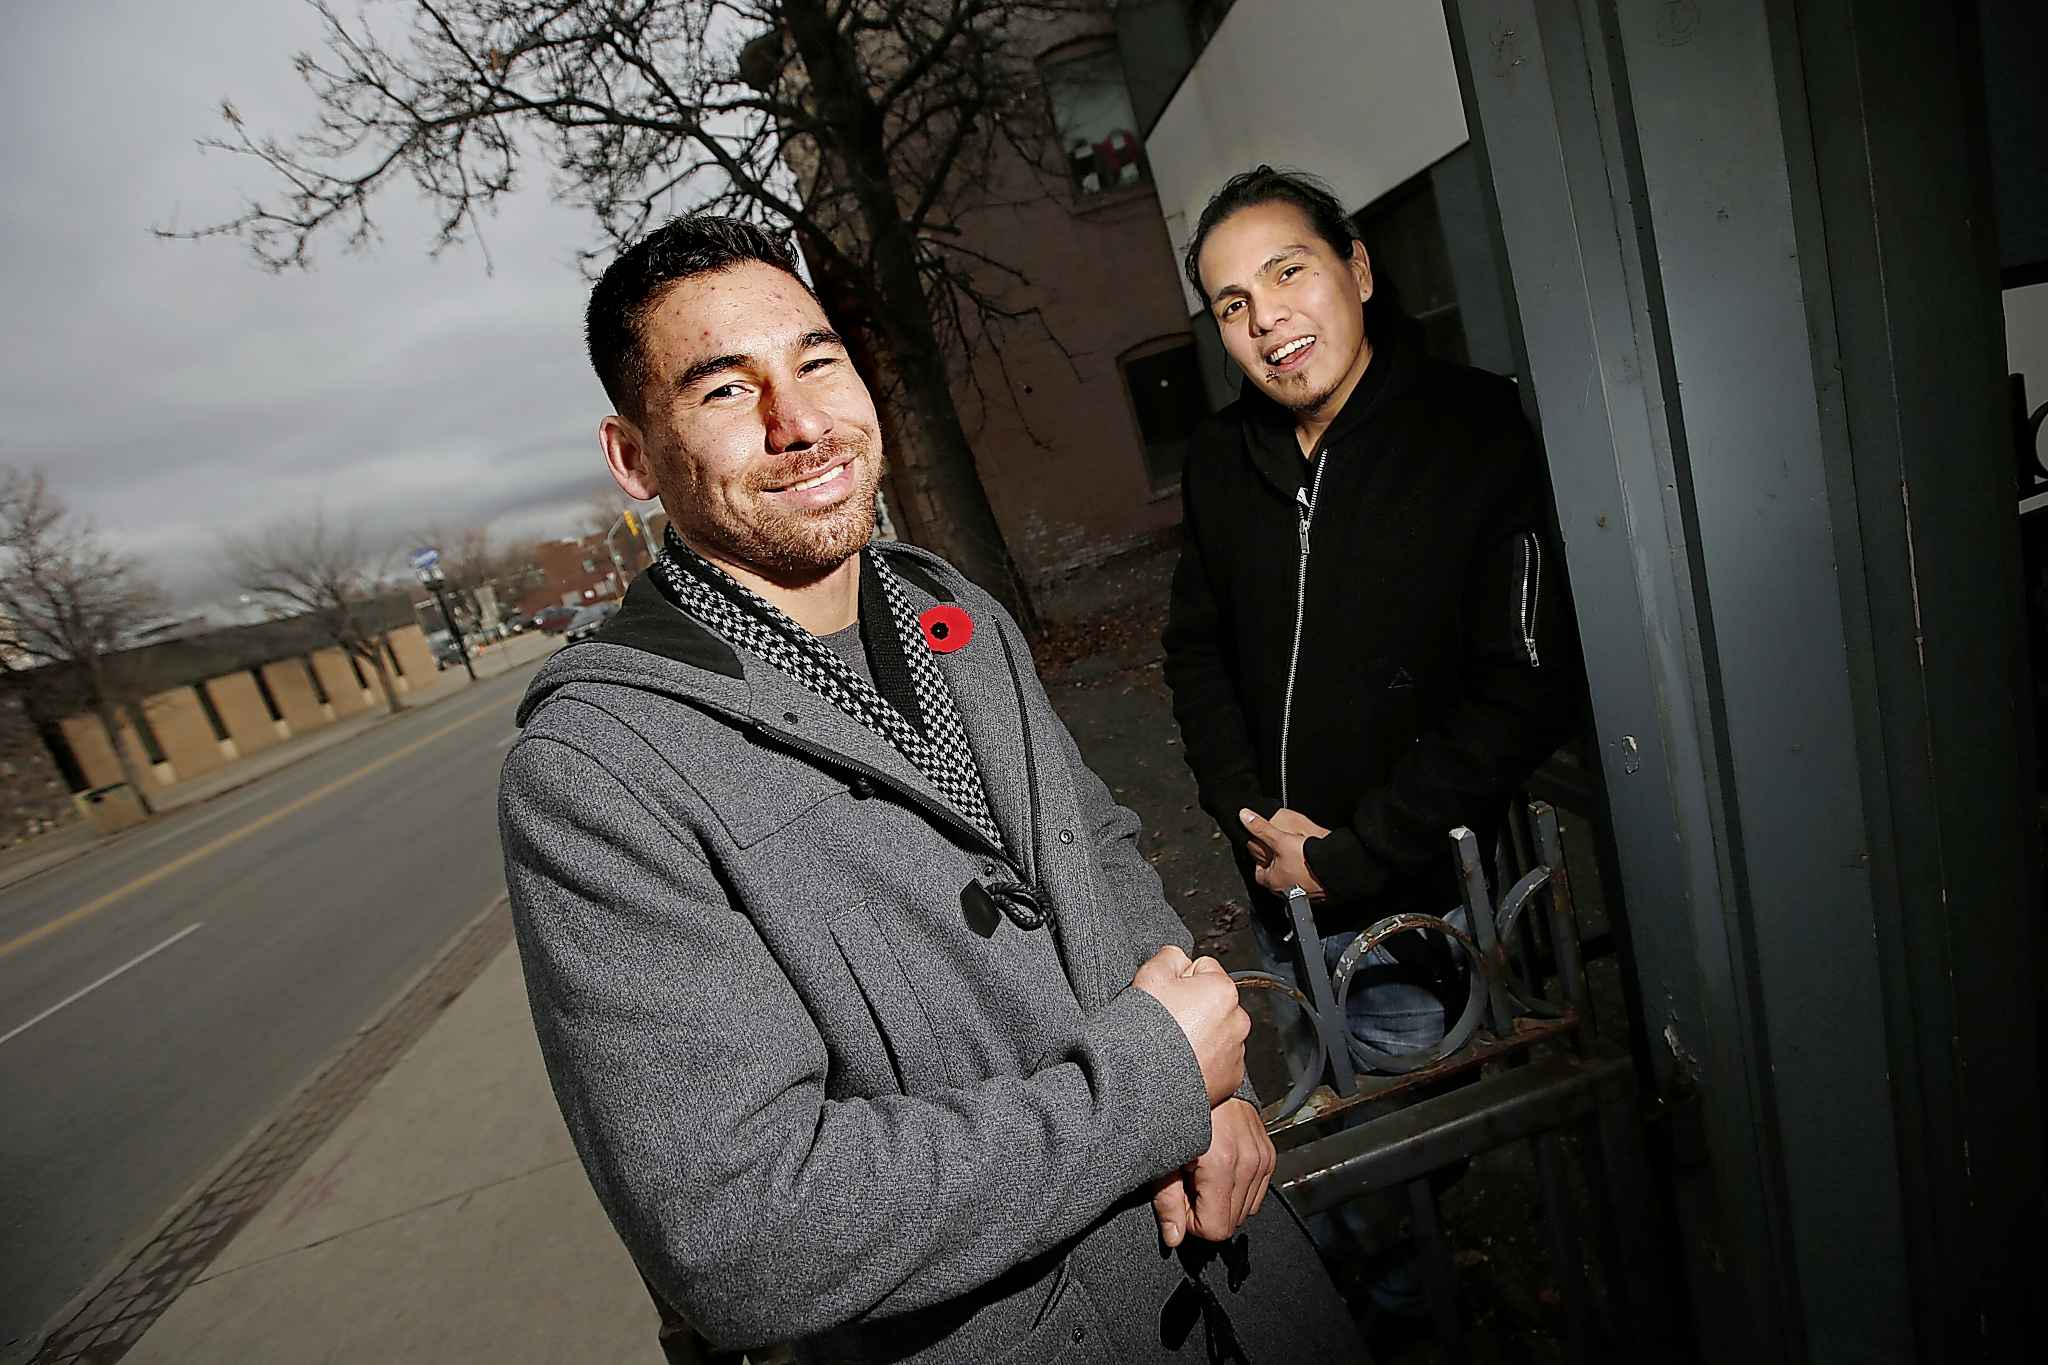 Jonathan Meikle, left, and Matthew Shorting (John Woods / Winnipeg Free Press files)